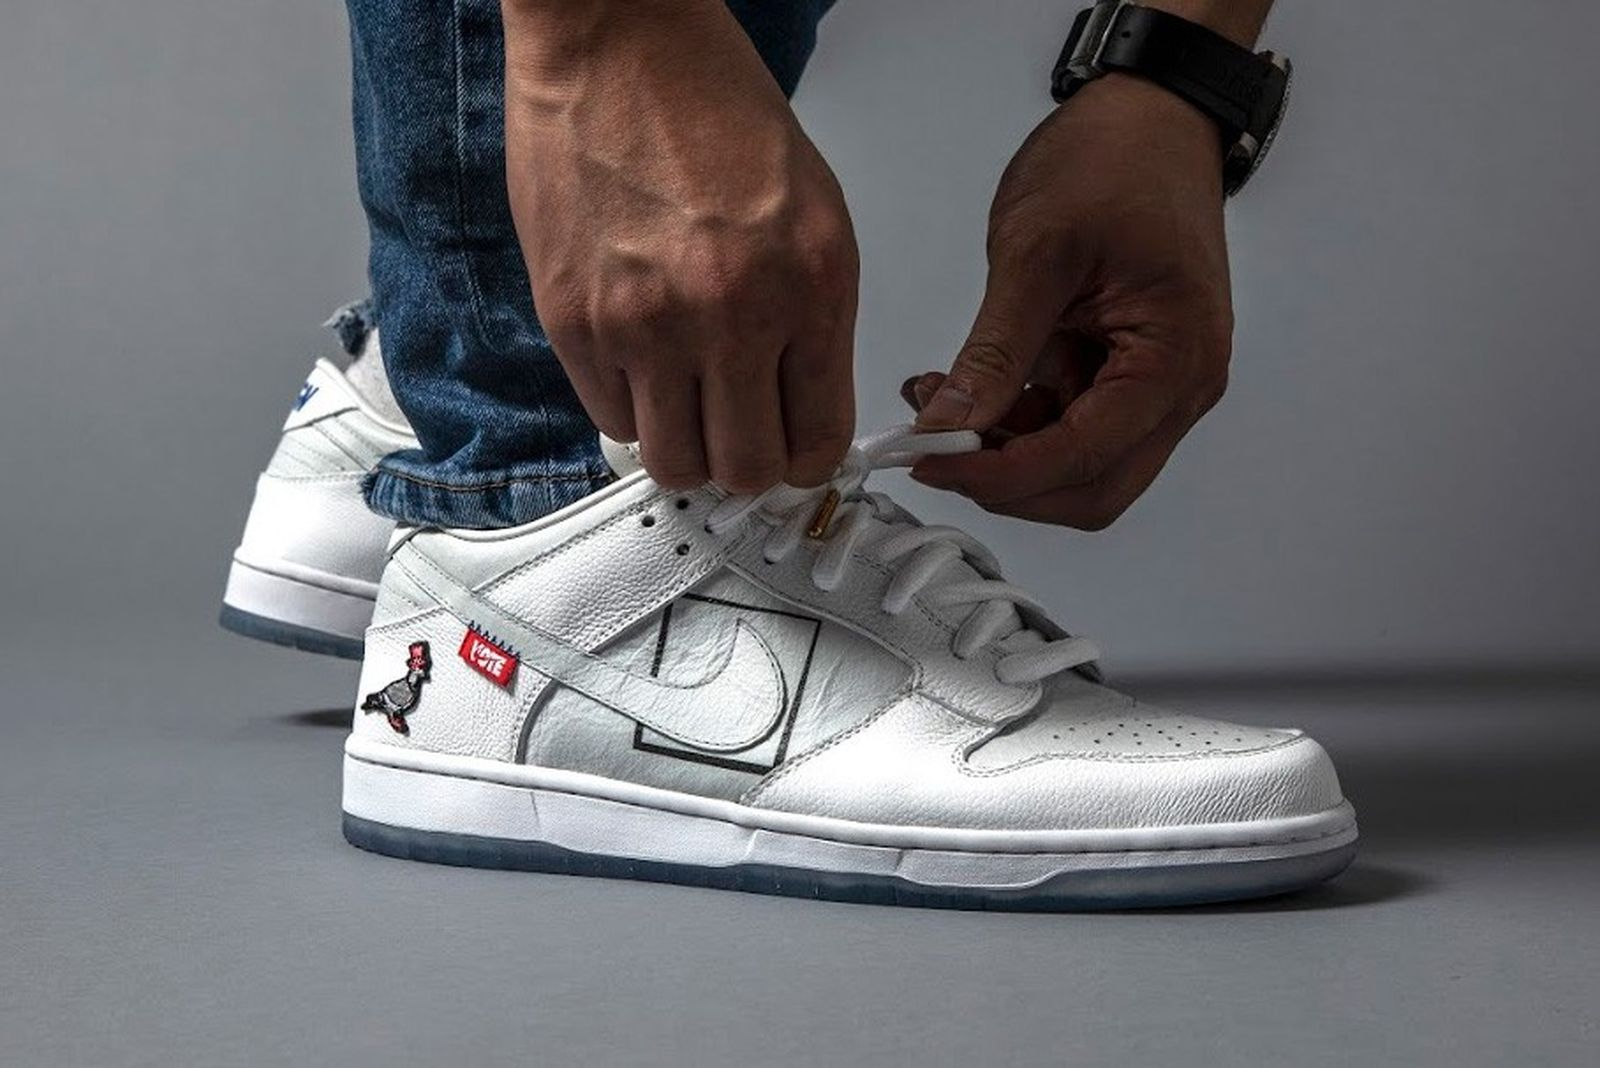 jeff-staple-shoe-surgeon-nike-sb-dunk-low-release-date-price-01